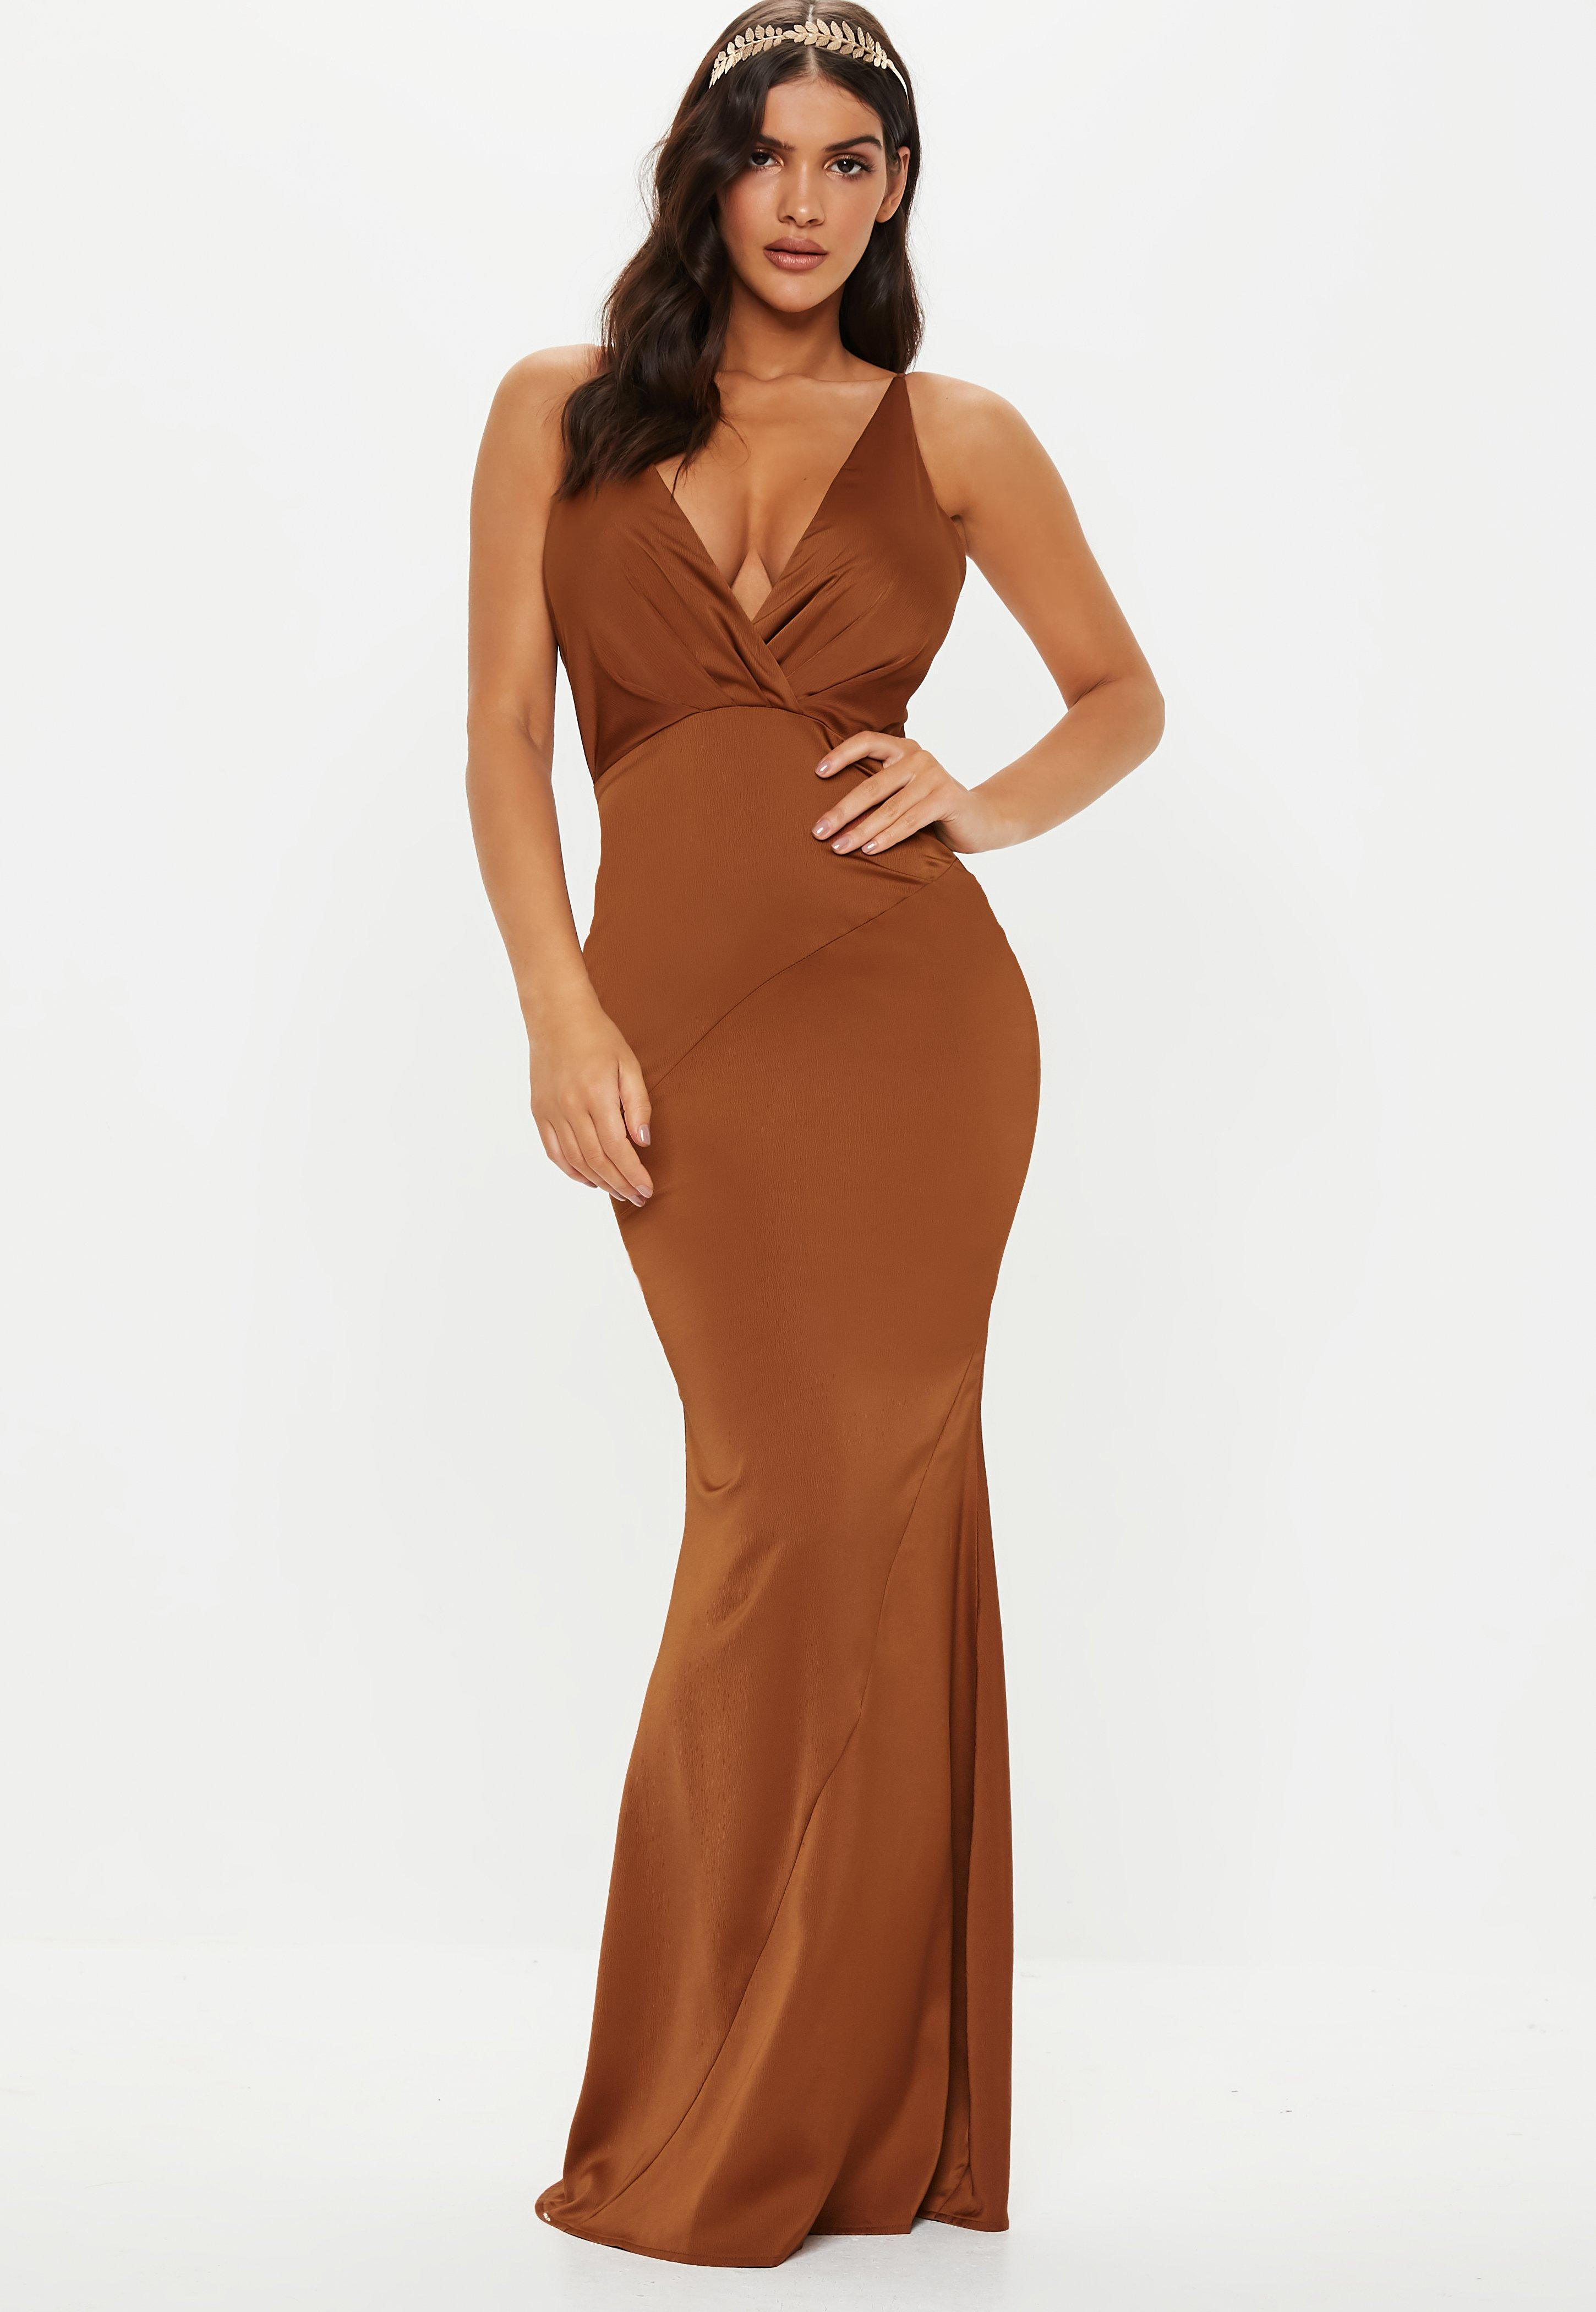 07c04c94c0 Deep V Neck Dress - Plunging Neckline Dresses